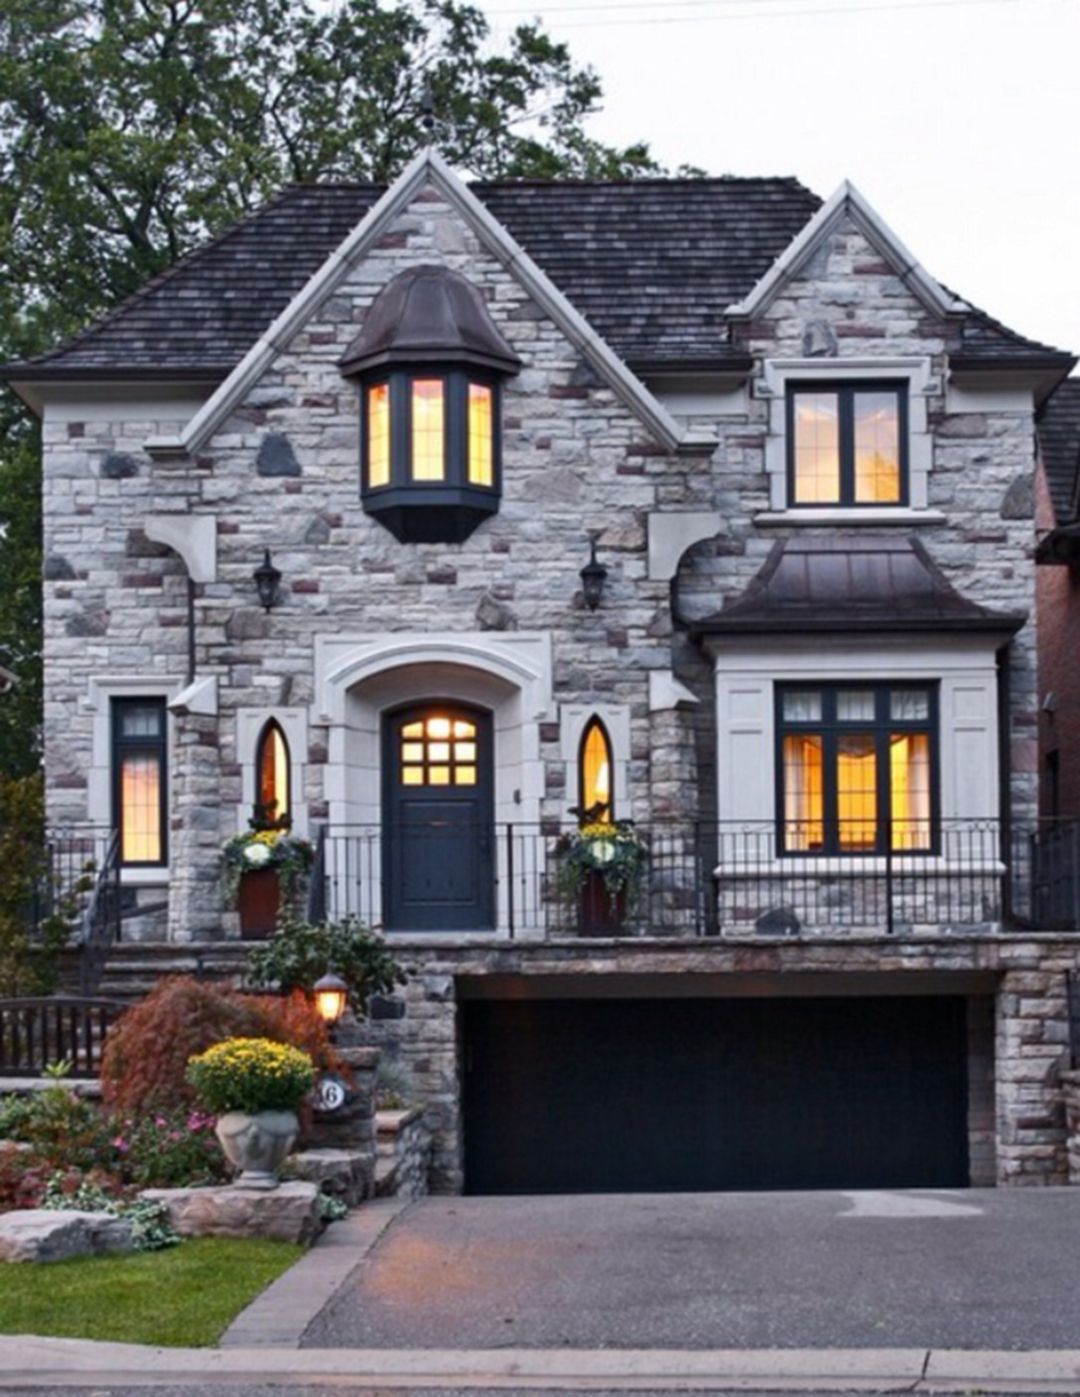 25 Beautiful Stone House Design Ideas On A Budget House Designs